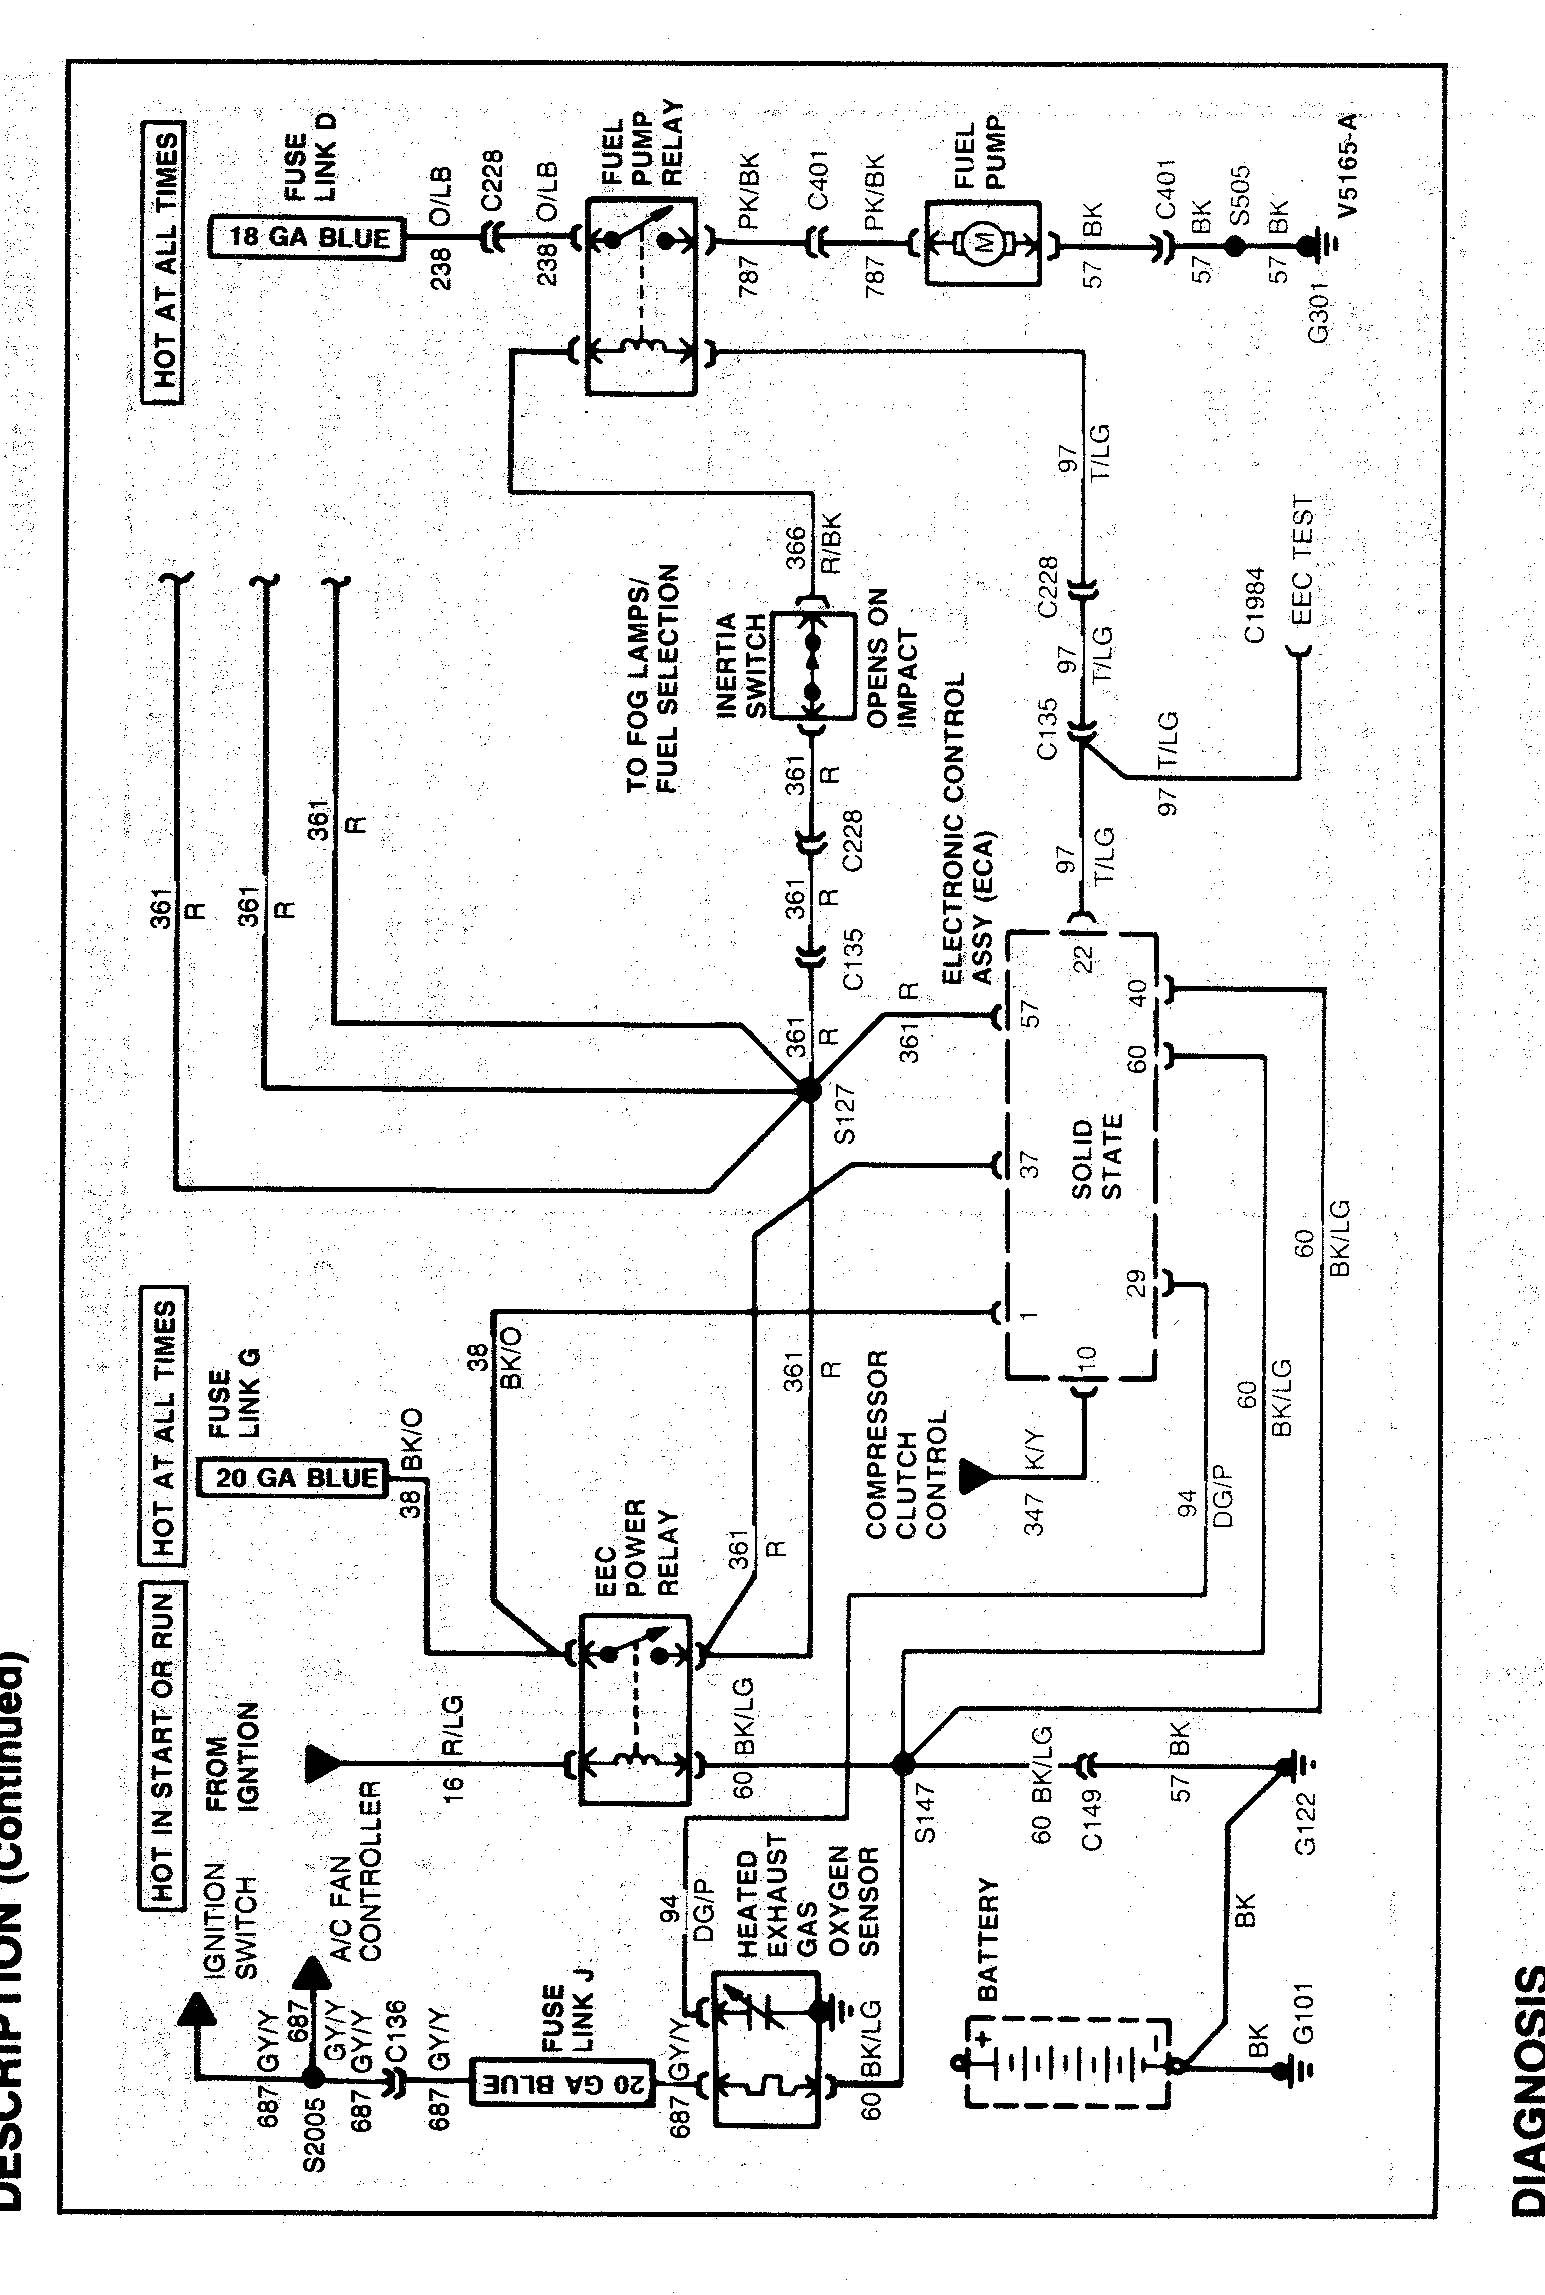 87 mustang fuel pump wiring diagram